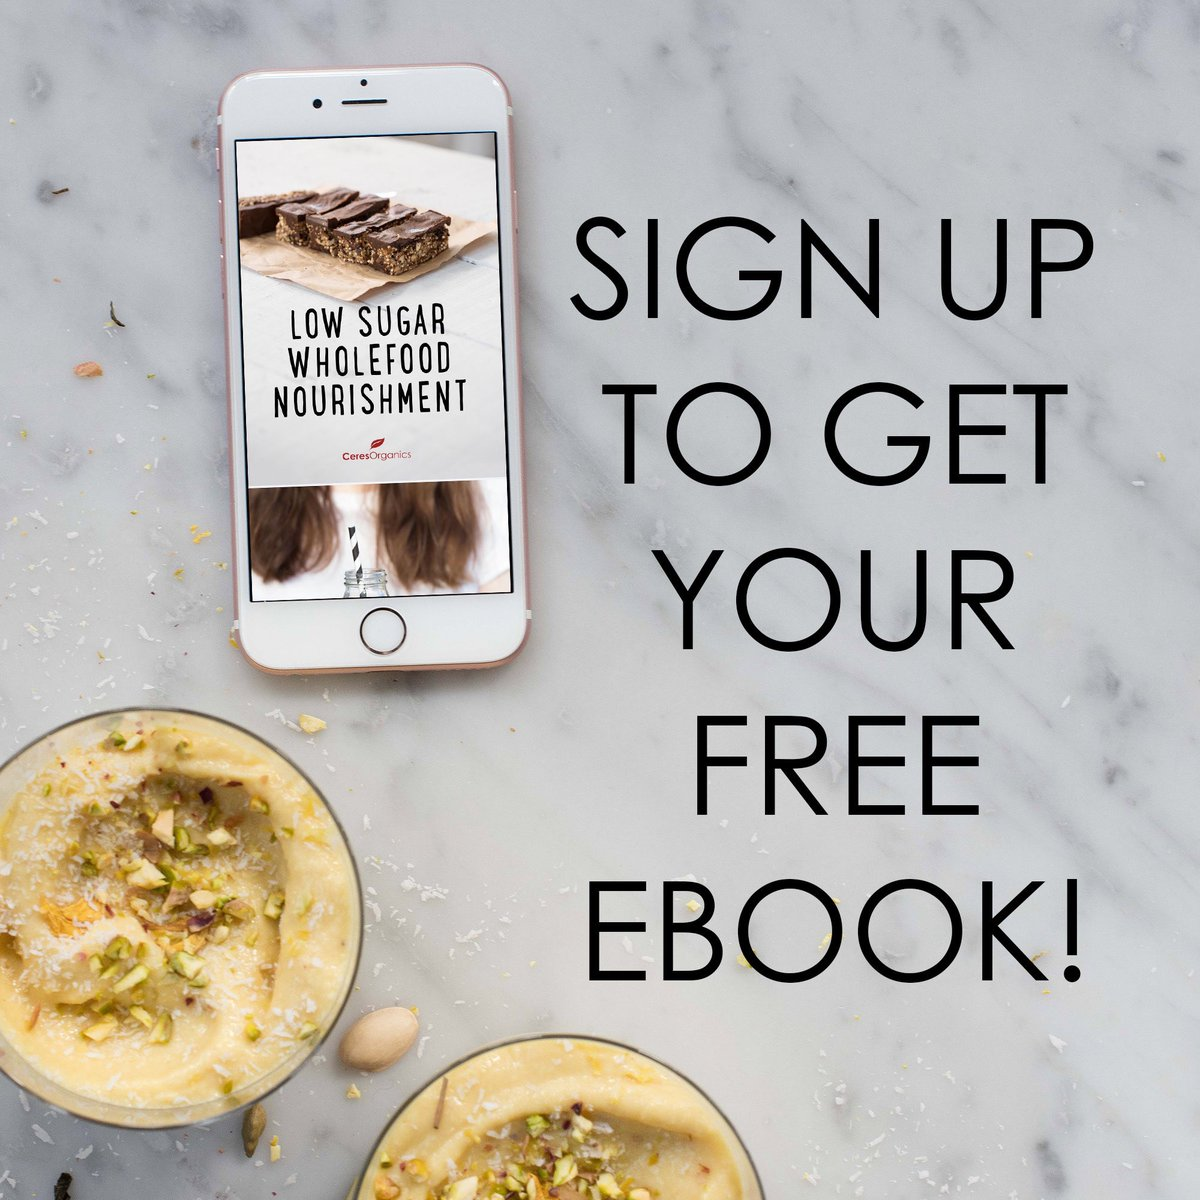 FREE Low Sugar Wholefood Nourishment ebook 🍪🍦 Get your copy here https://t.co/zpEXcmD5rV https://t.co/EXETVVFbkT